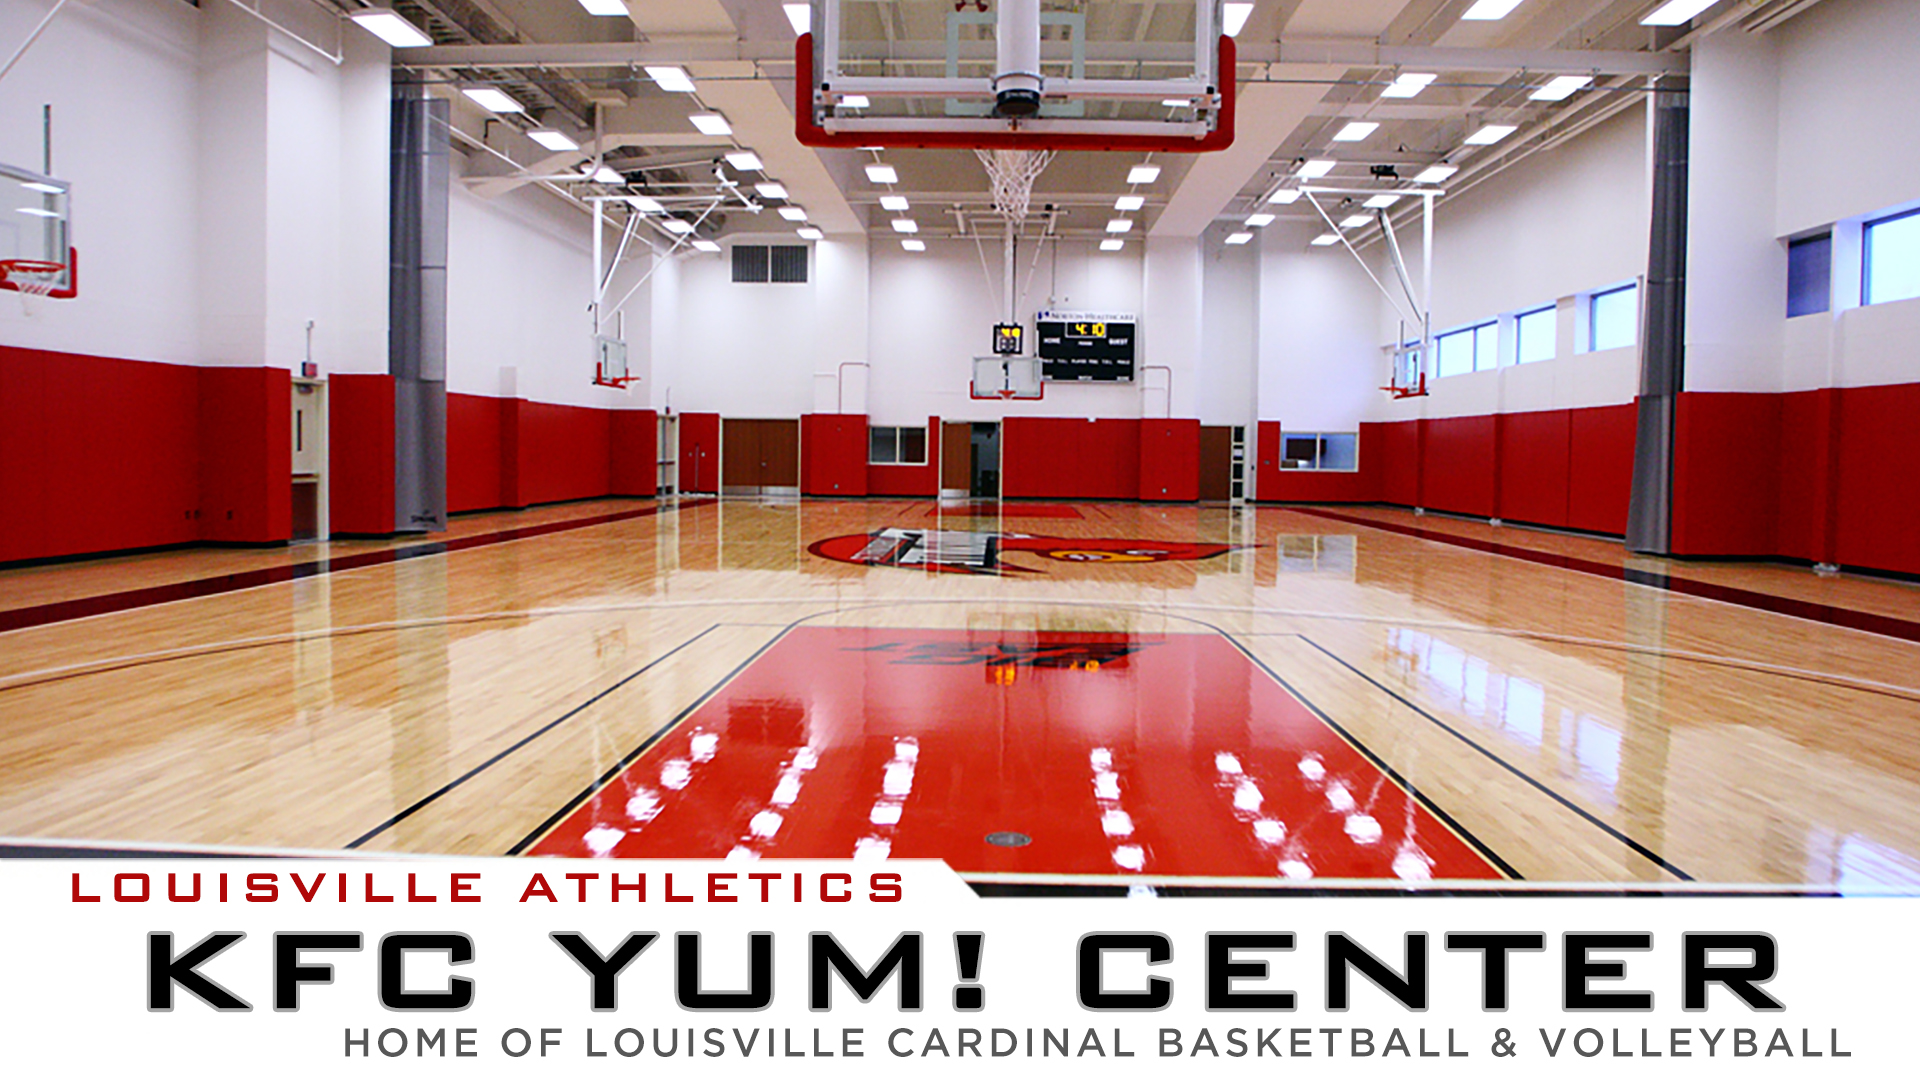 Kfc Yum Center Facilities University Of Louisville Athletics